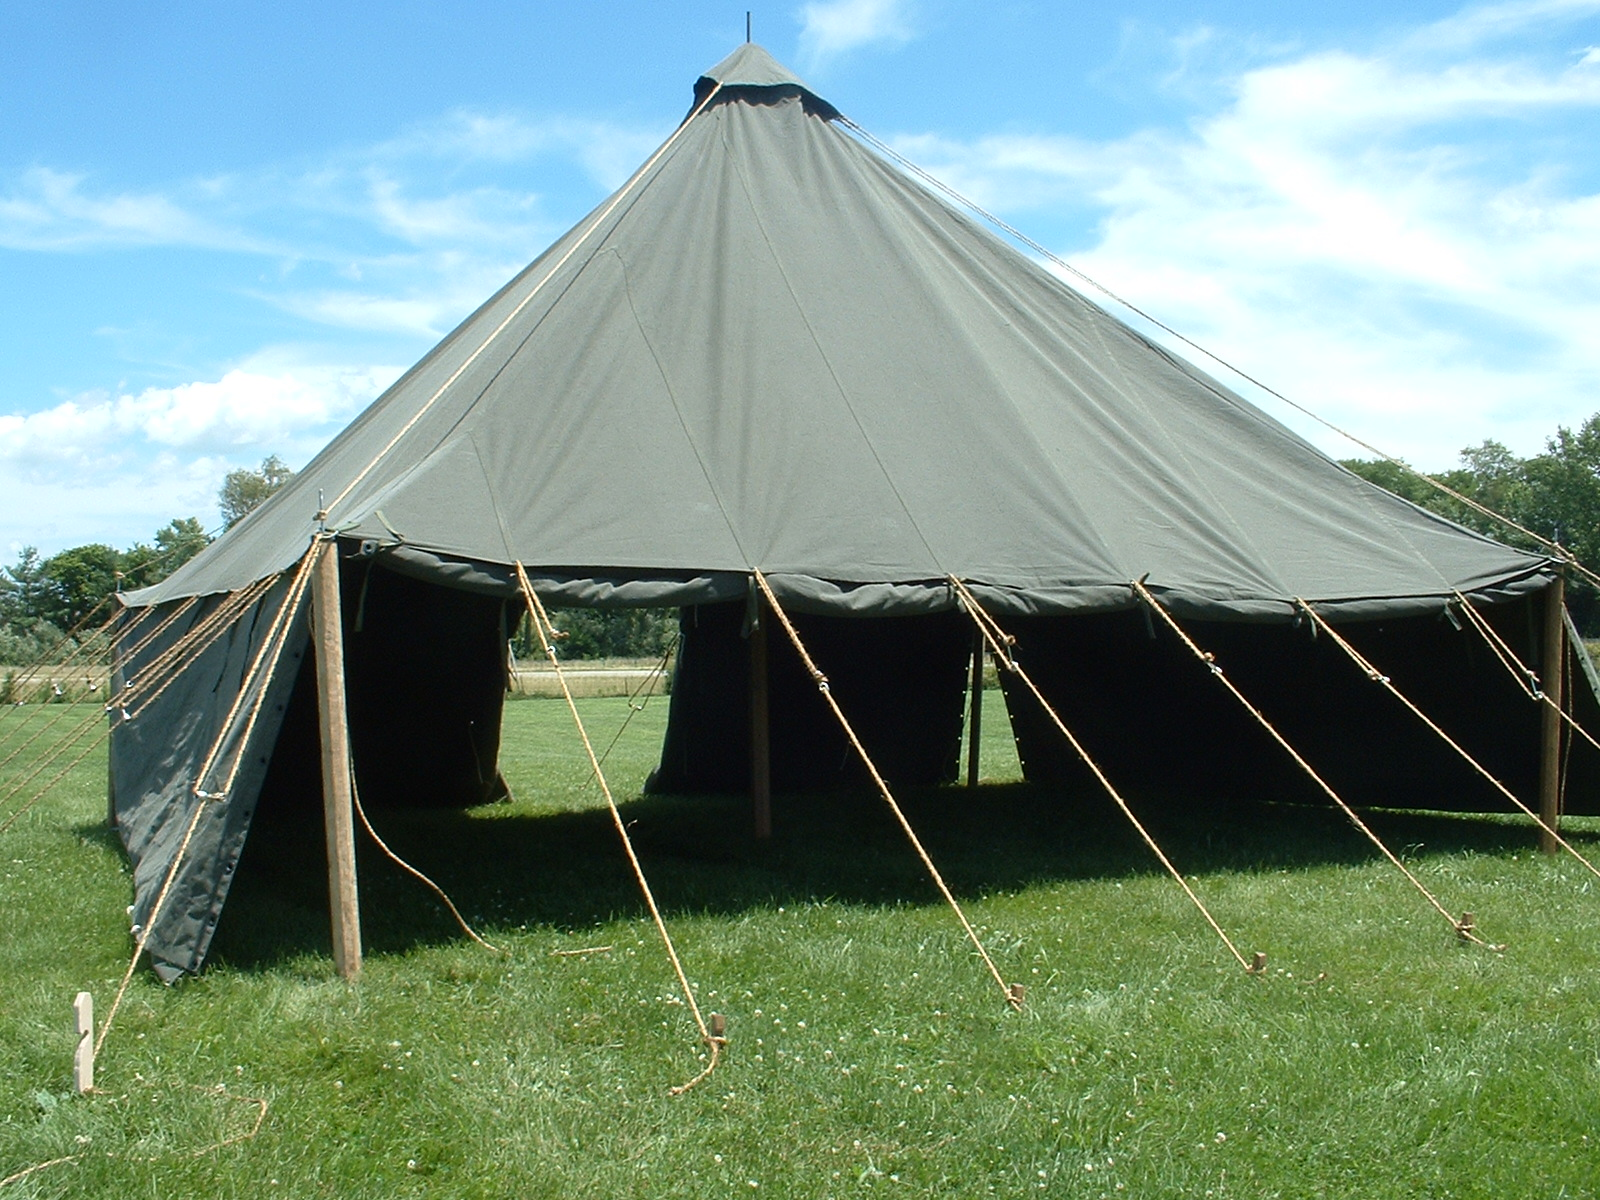 Armbruster now offers the 1934 Pyramidal tent just like we did during WWII. During WWII these tents were classified as Tent Fire-Resistant Pyramidal ... & 1934 Pyramidal Tent from Armbruster | Armbruster Tent Maker